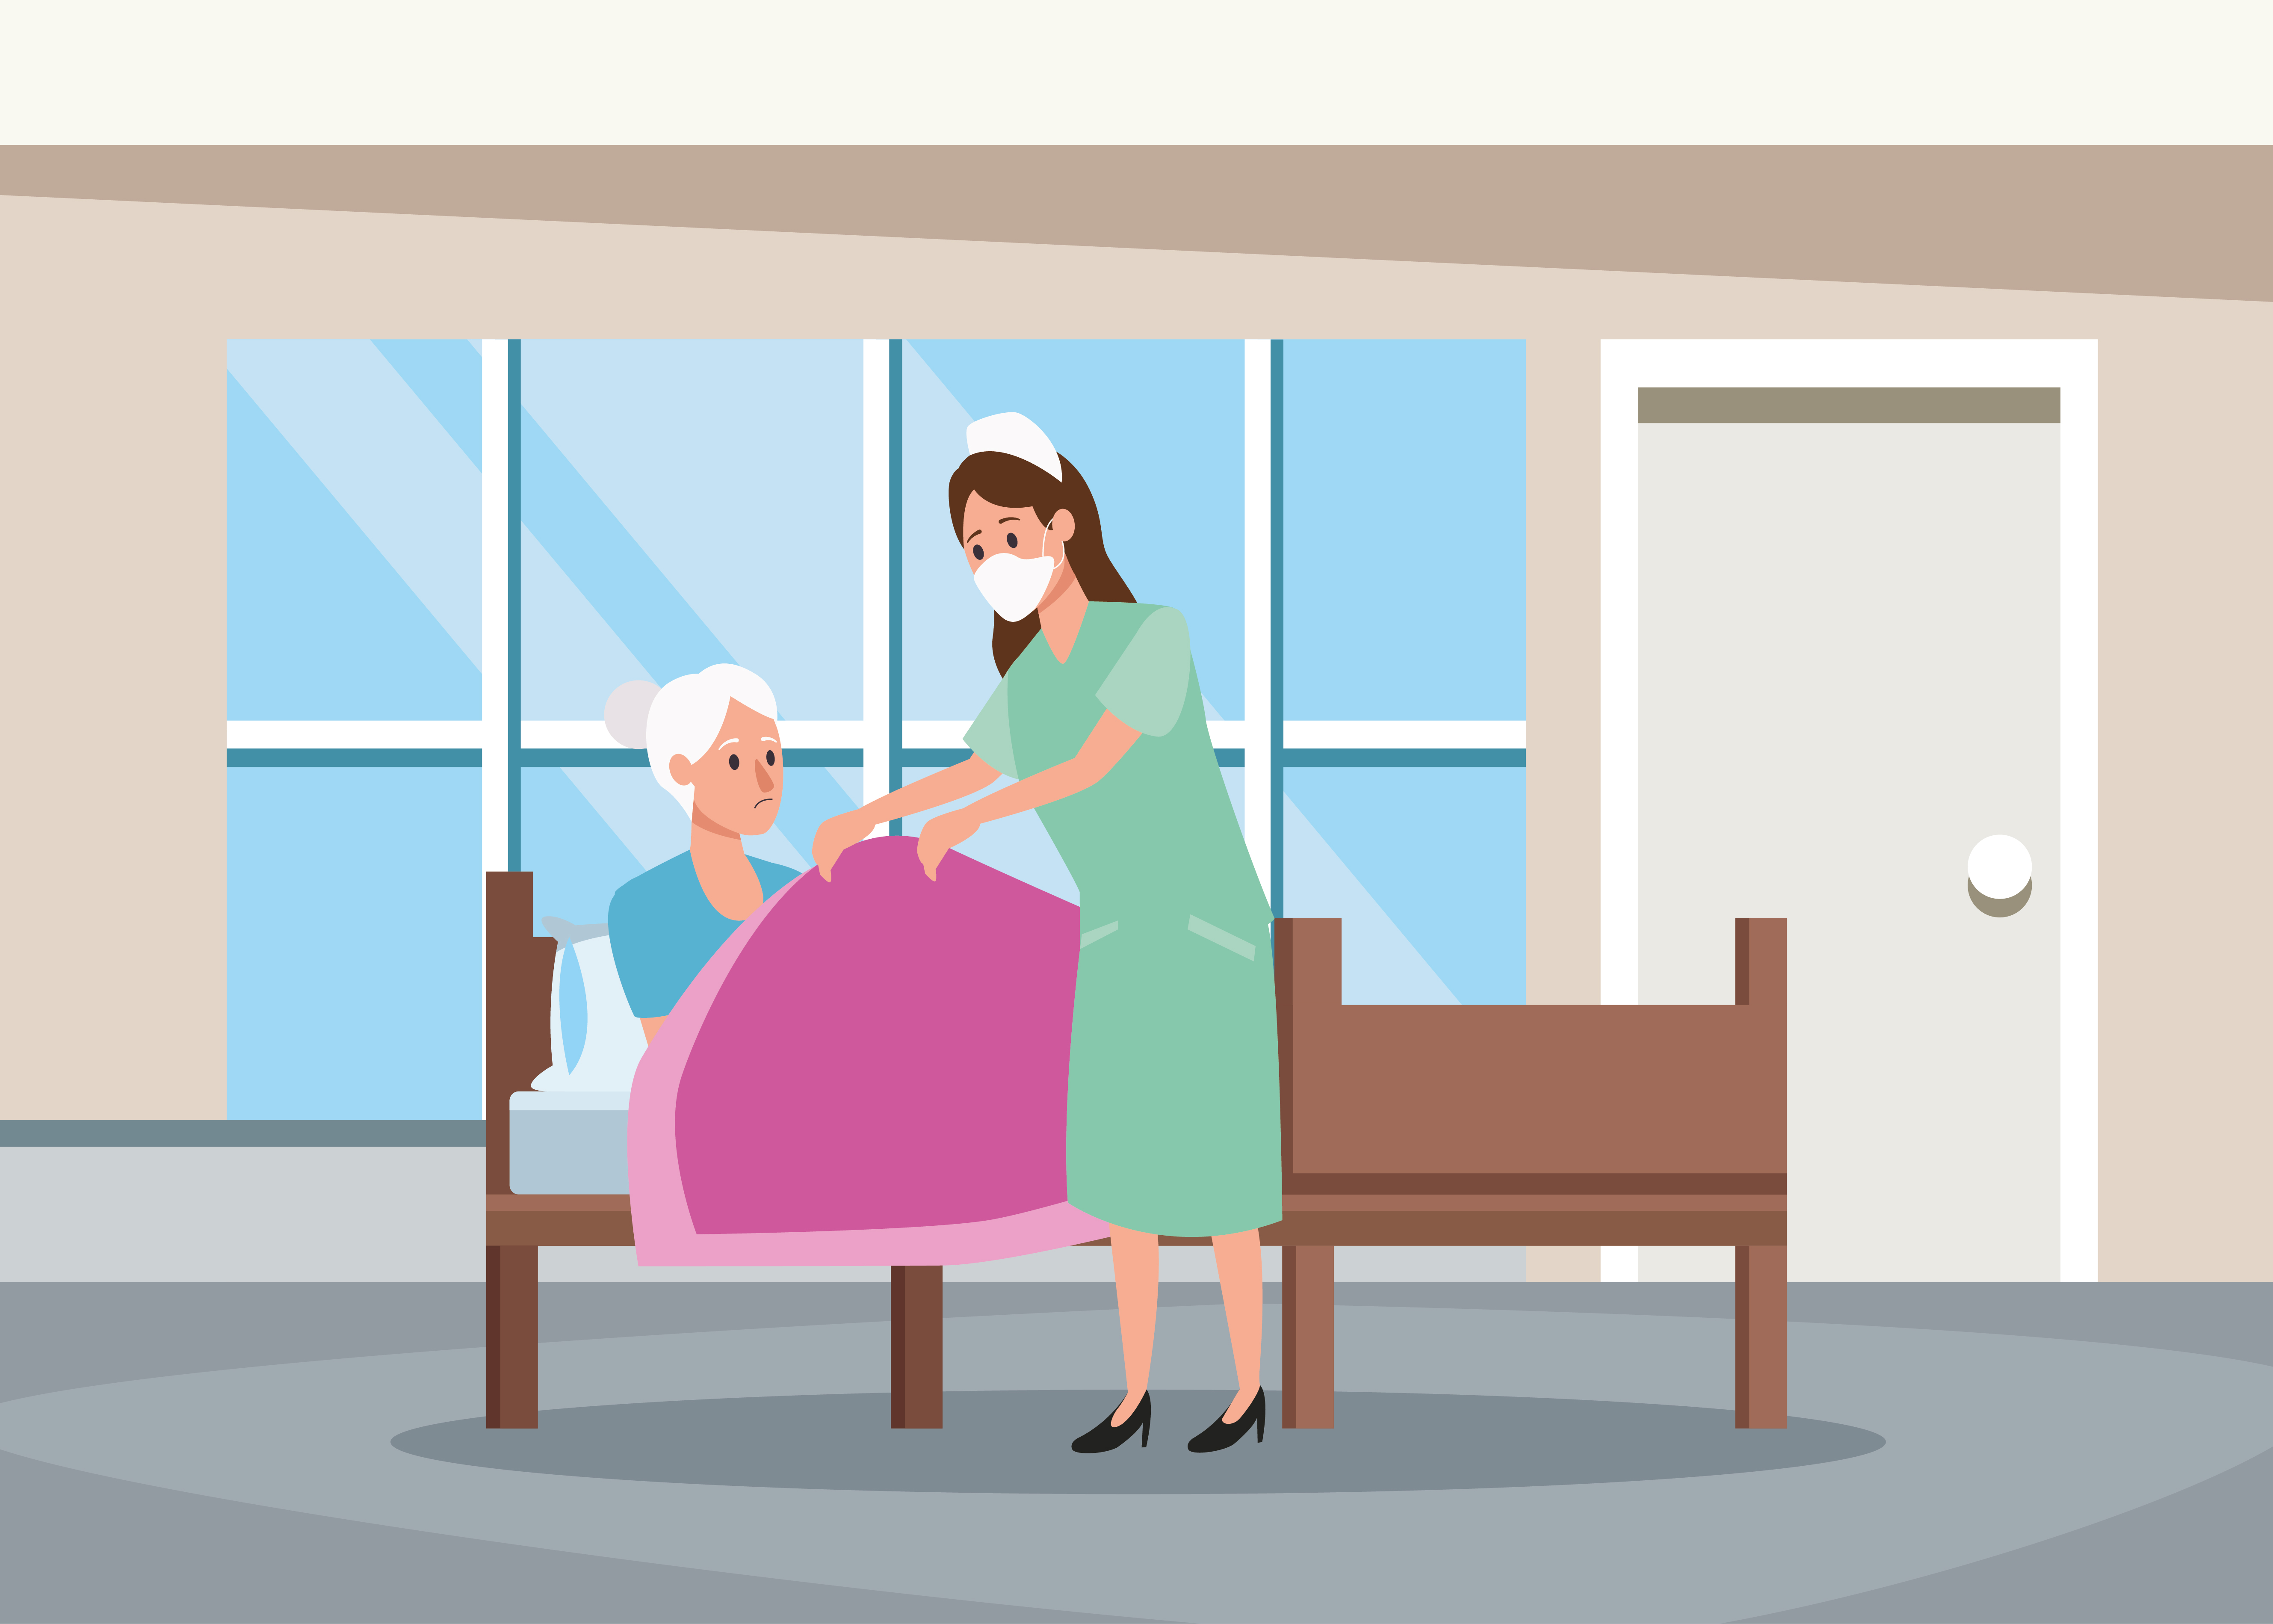 Nurse protecting elderly person in bed characters vector